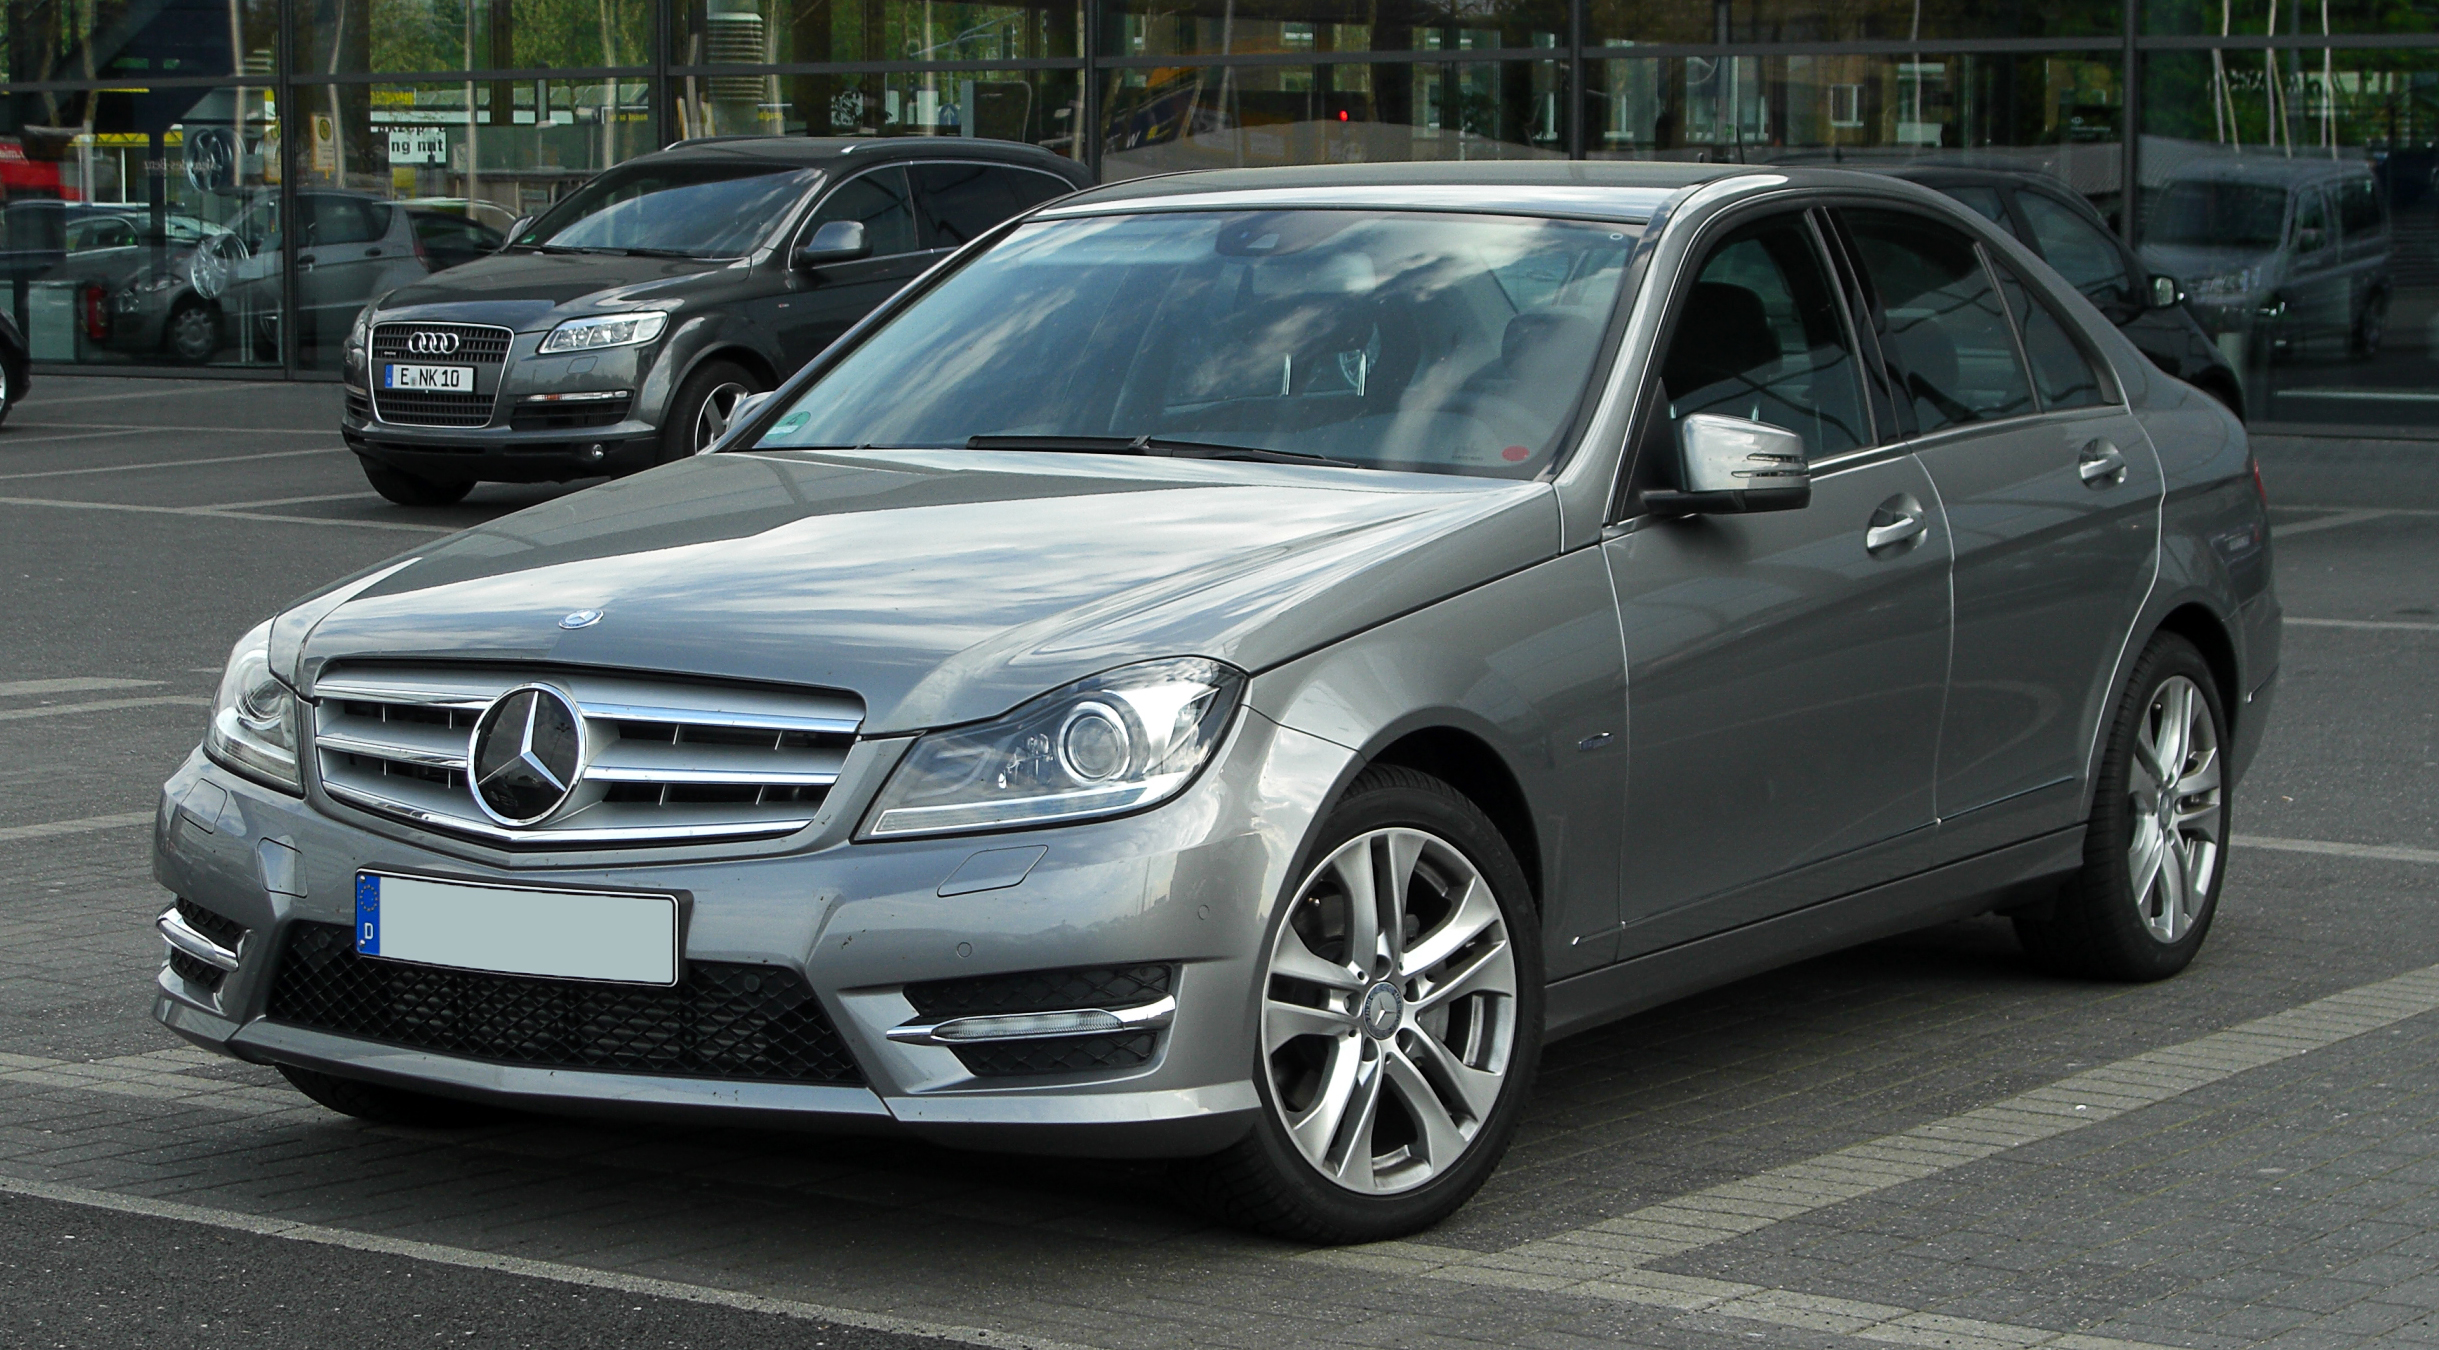 Watch furthermore Mercedes Benz C200 And C220 Used Review 2007 2011 34739 in addition 1439374 as well Calvin Klein Underwear Ads Controversy furthermore Watch. on 2010 mercedes benz c200 kompressor